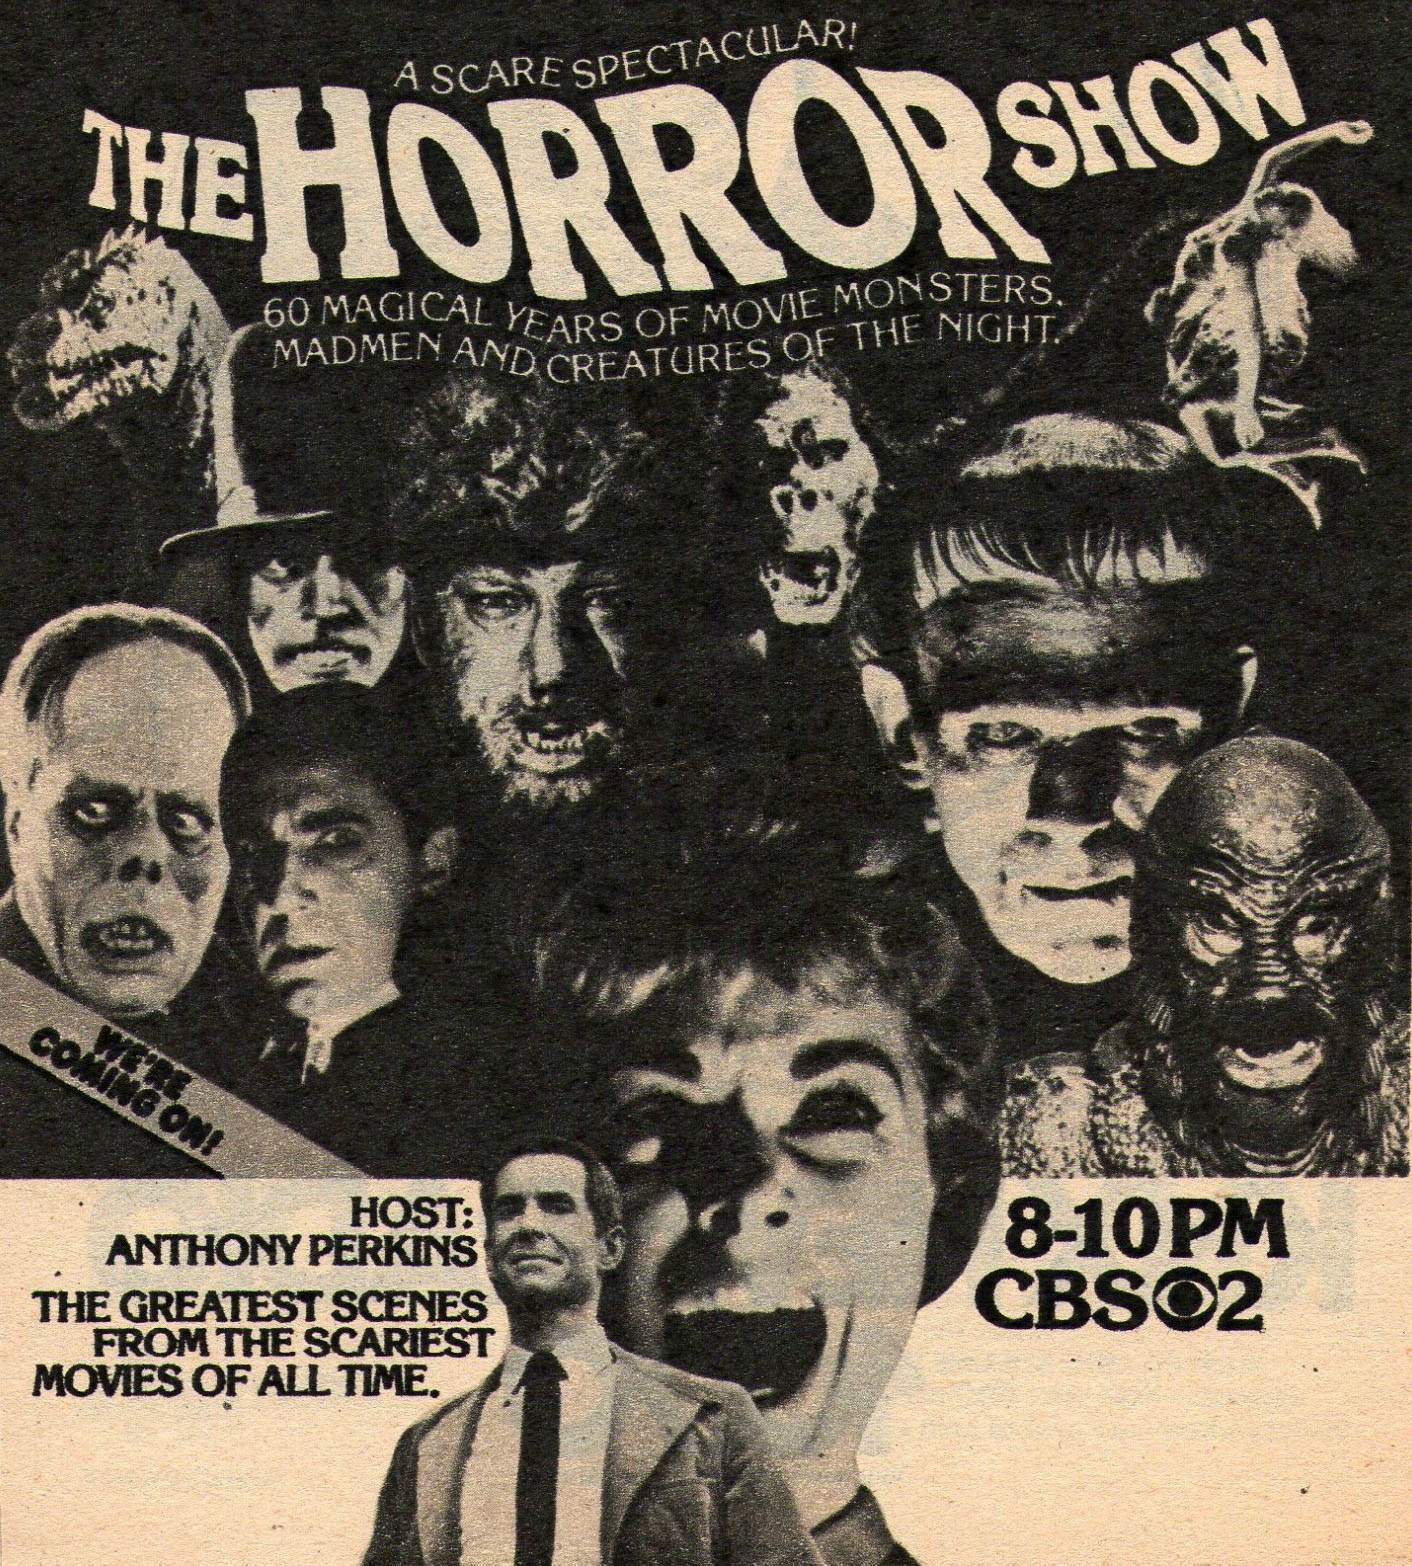 Terror On The Small Screen Vintage Tv Horror Adverts - Flashbak-5844